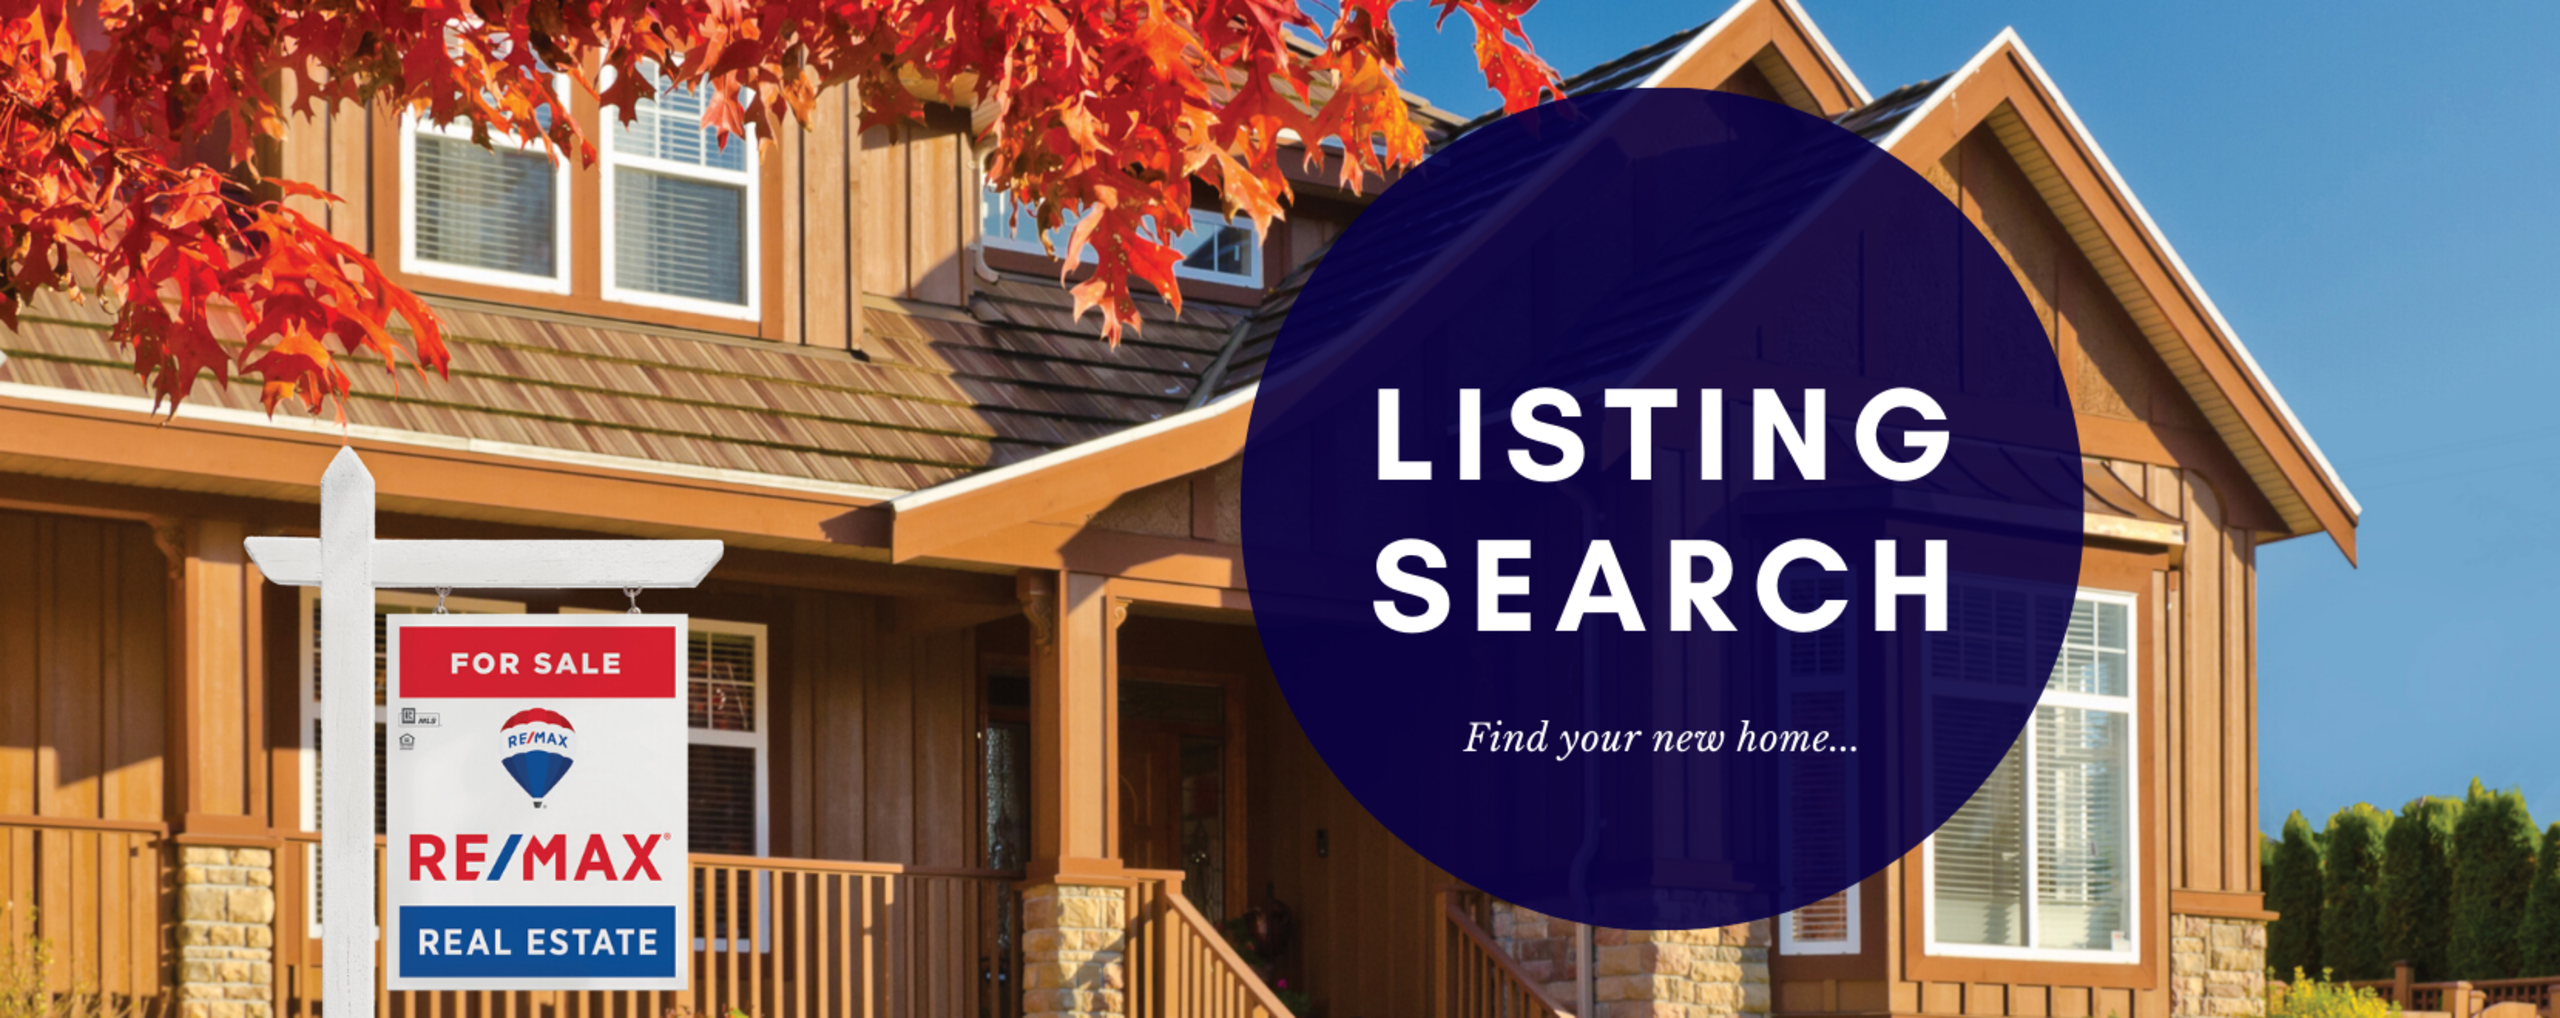 Listing Search